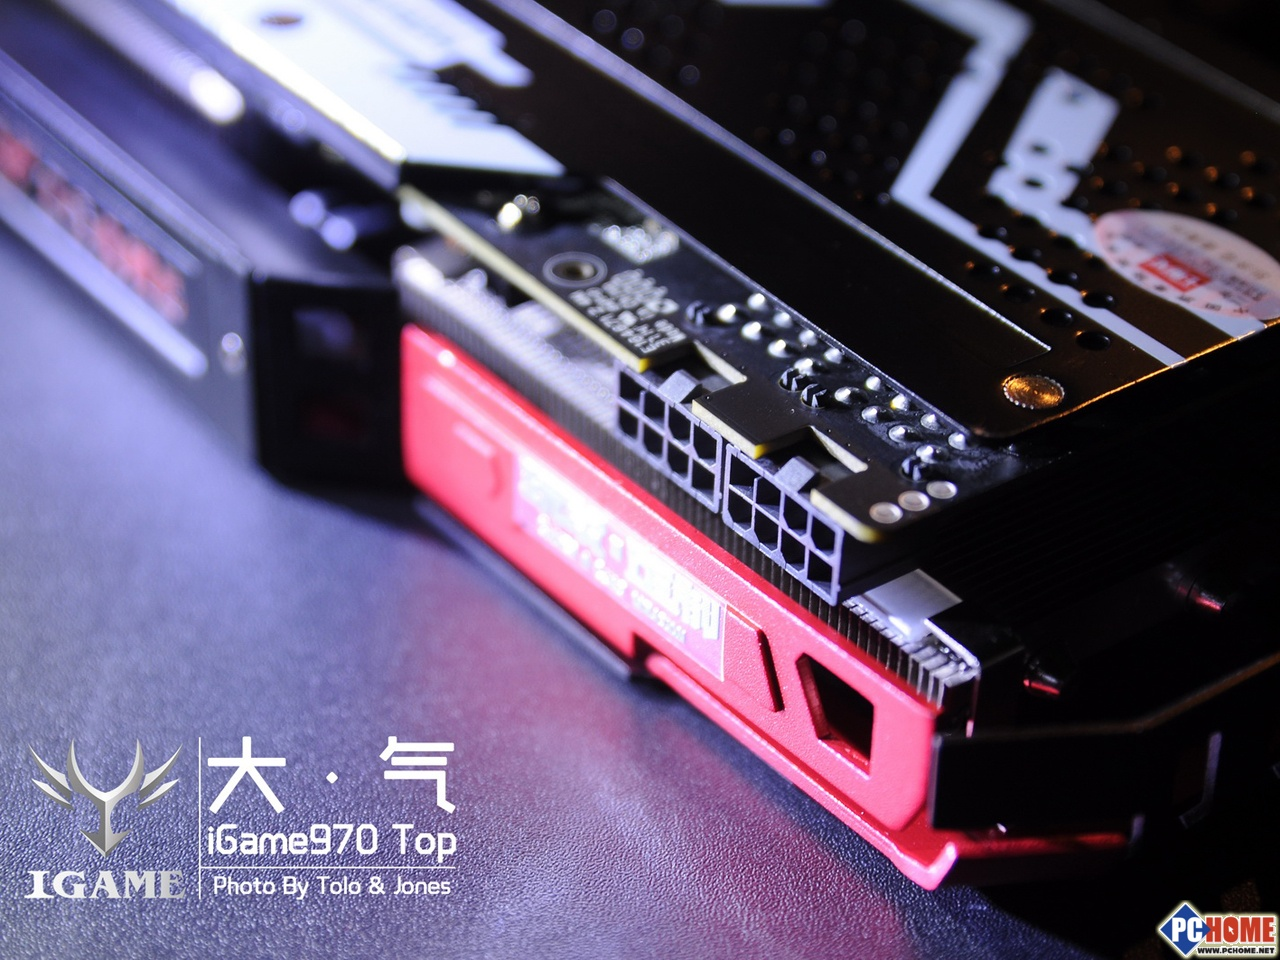 colorful-igame-geforce-gtx-970-flame-wars-x-top_6